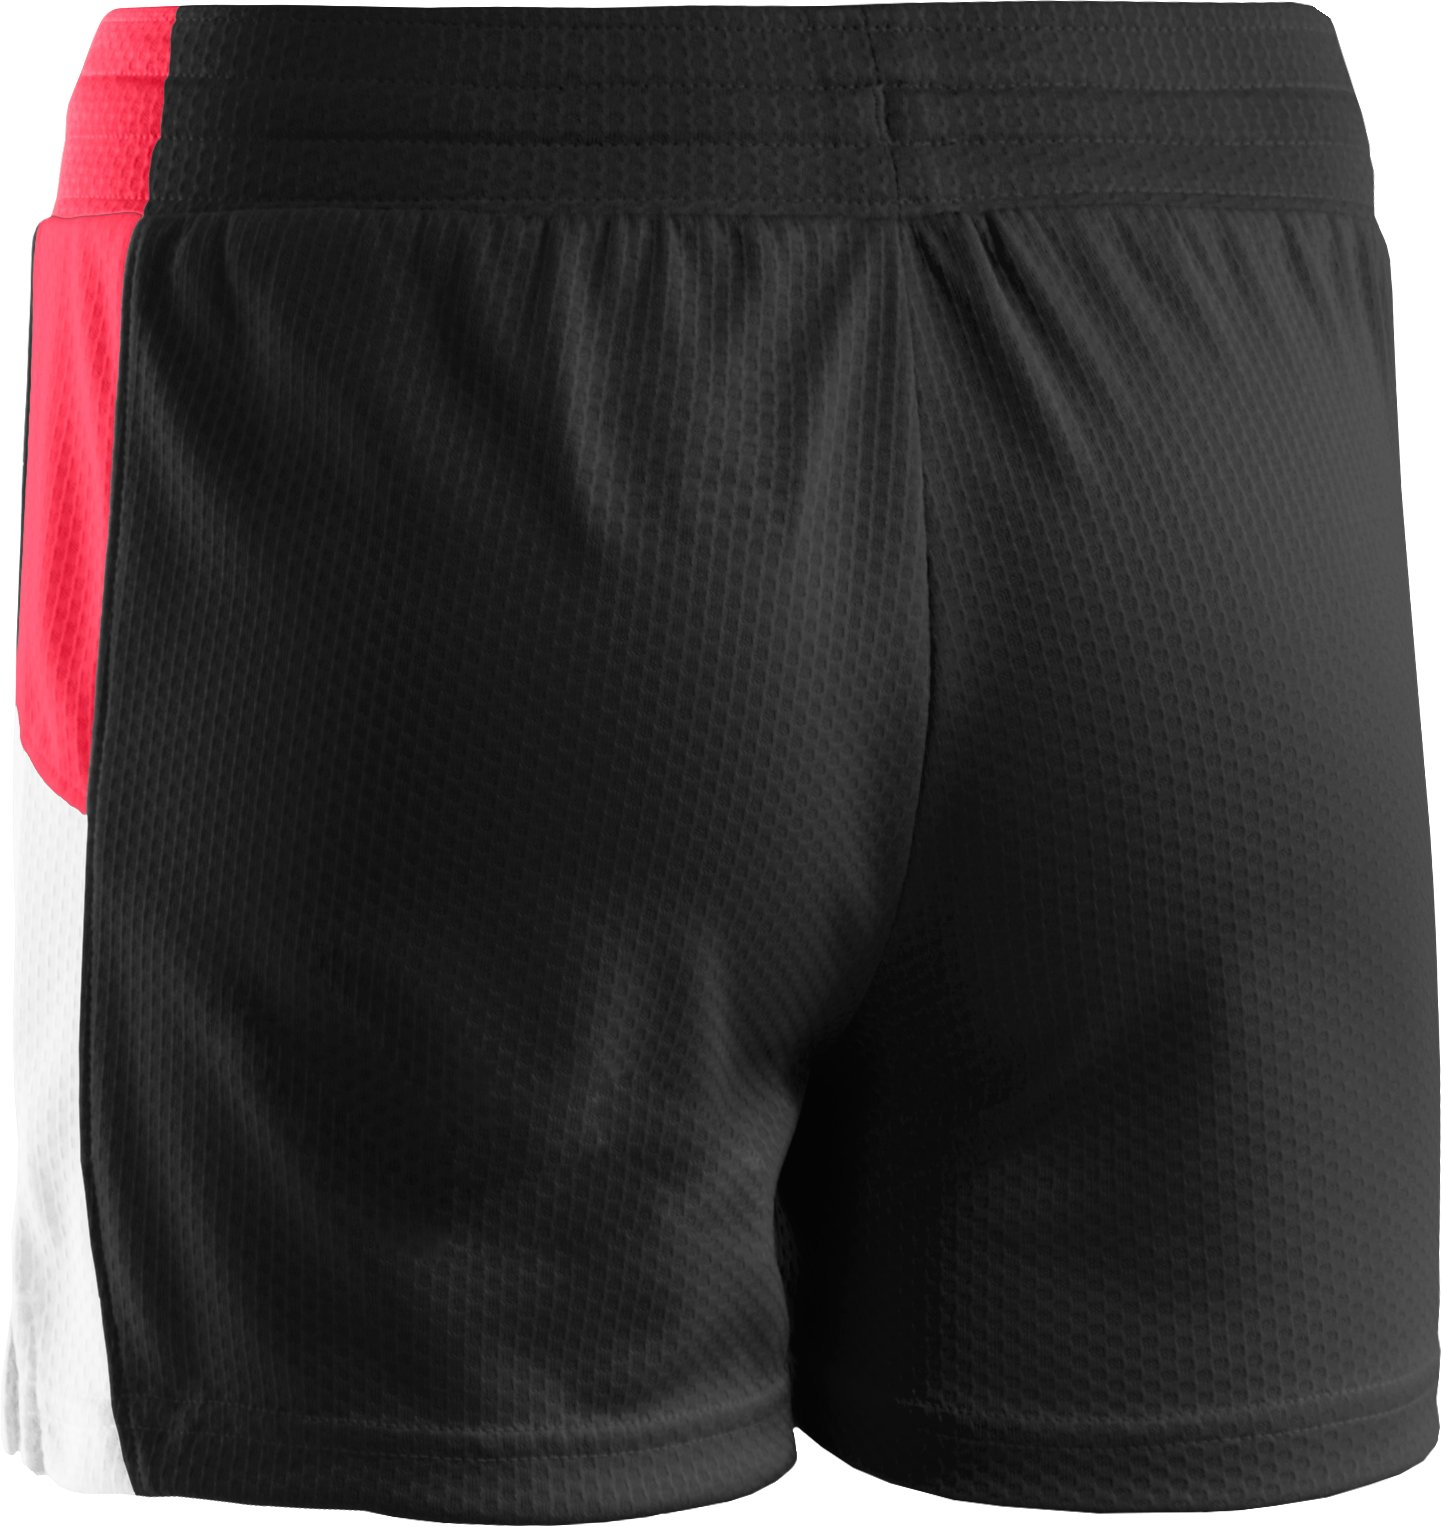 "Girls' UA Intensity 3"" Shorts, Black"